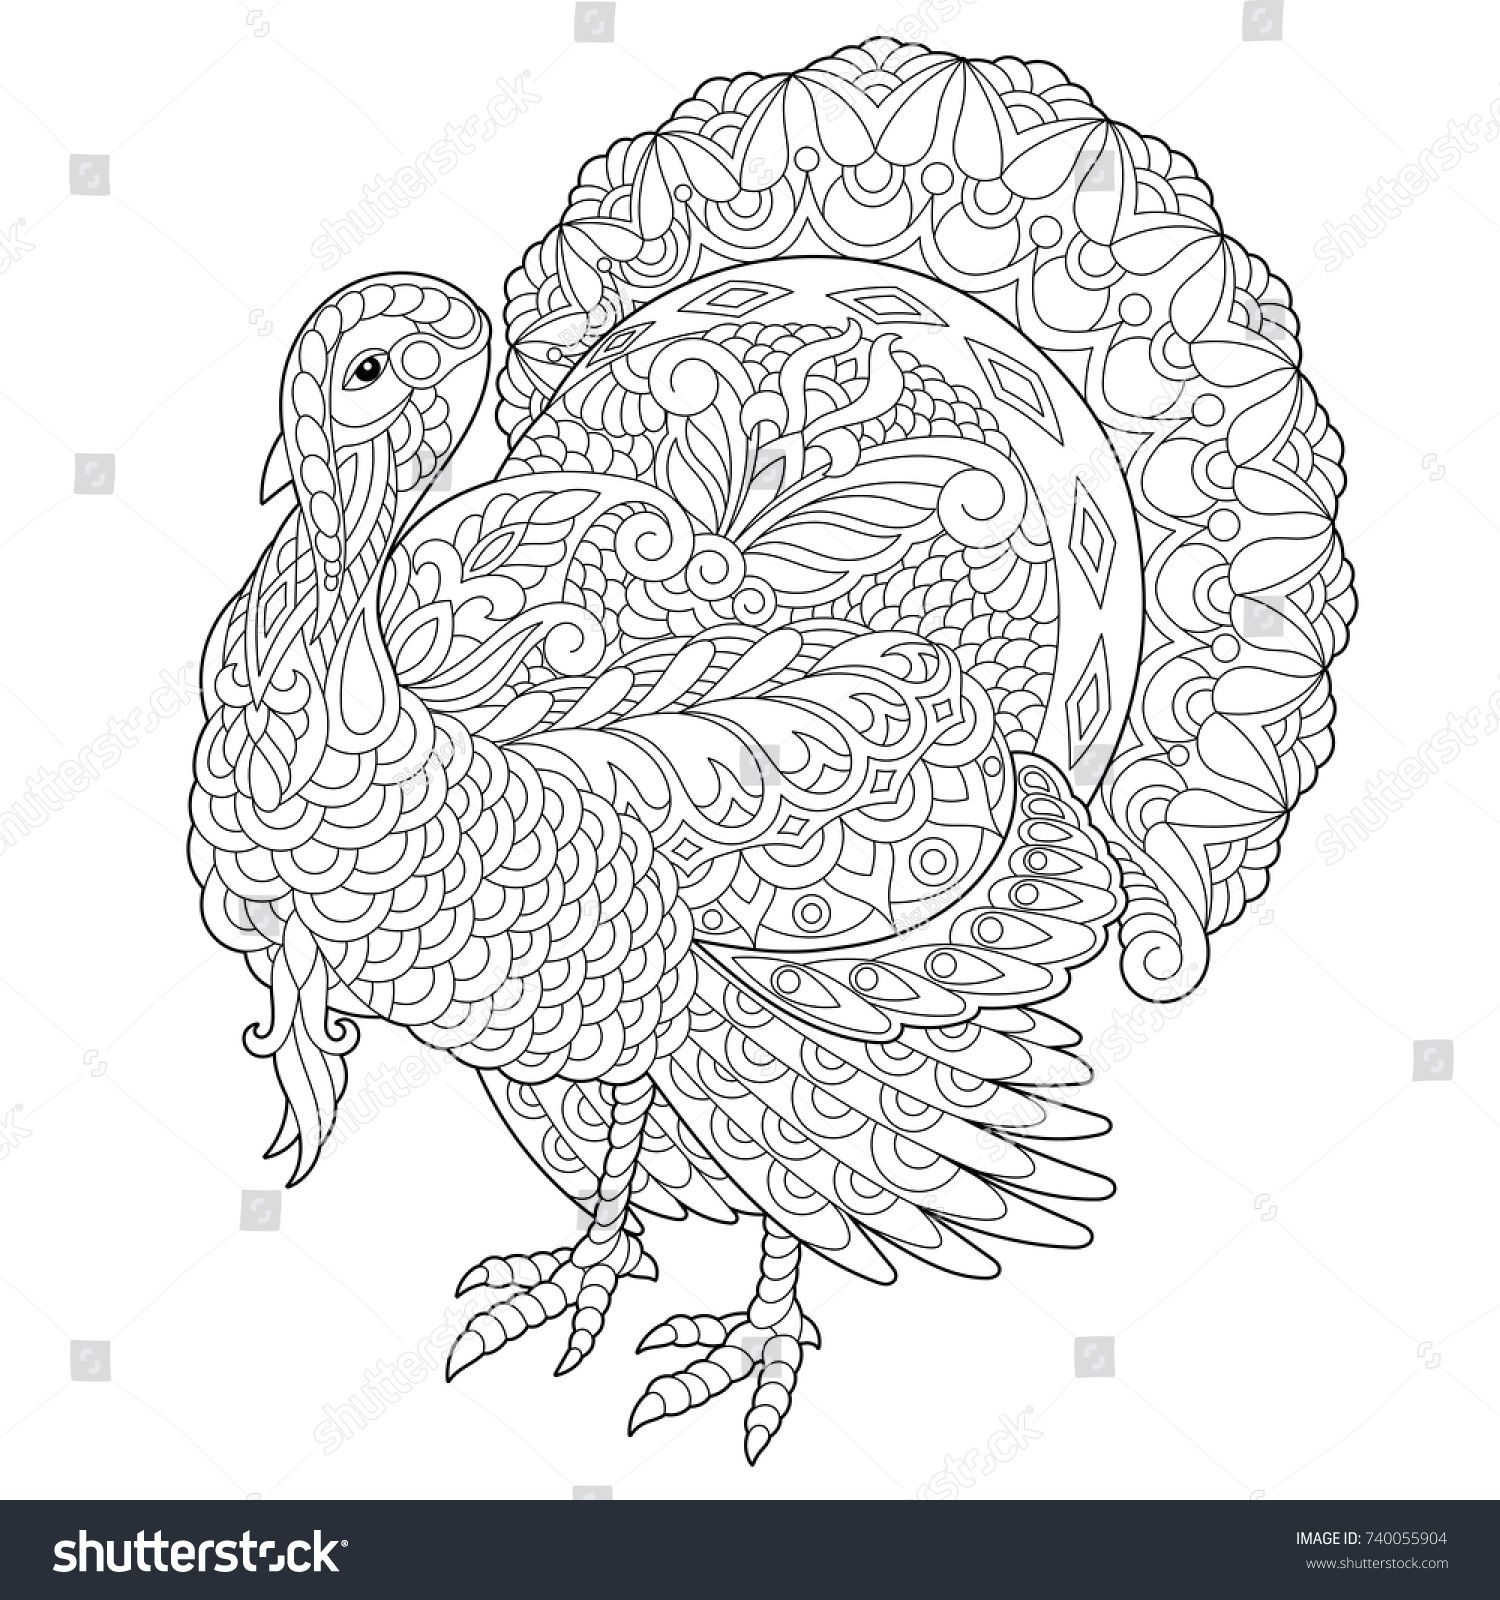 23 Coloring Pages Greeting Cards Gallery - Coloring Sheets